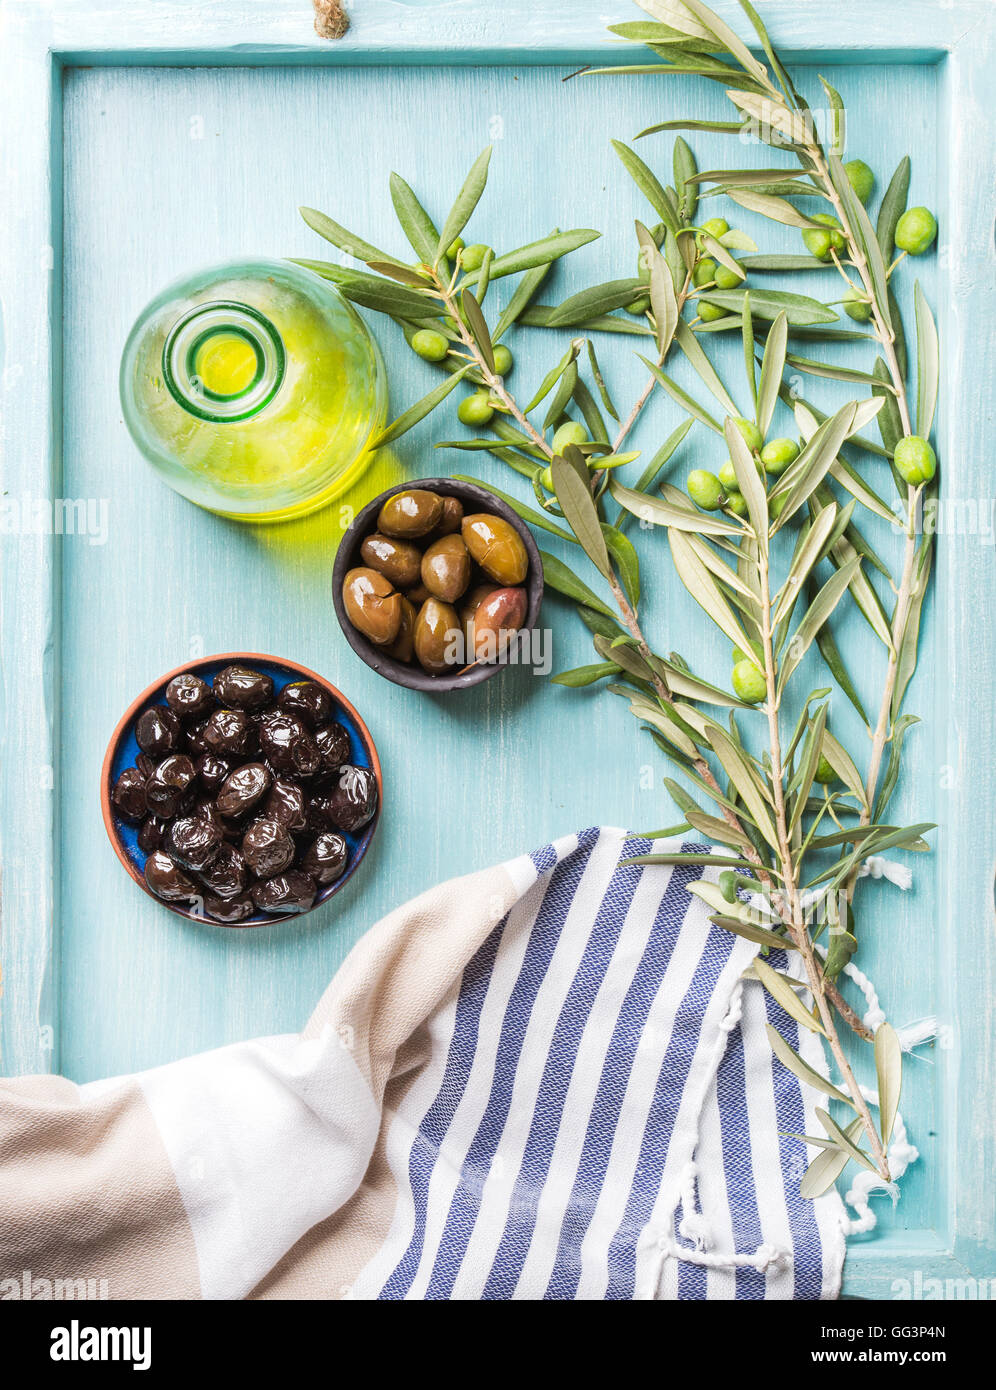 Green and black olives, olive tree sprigs - Stock Image